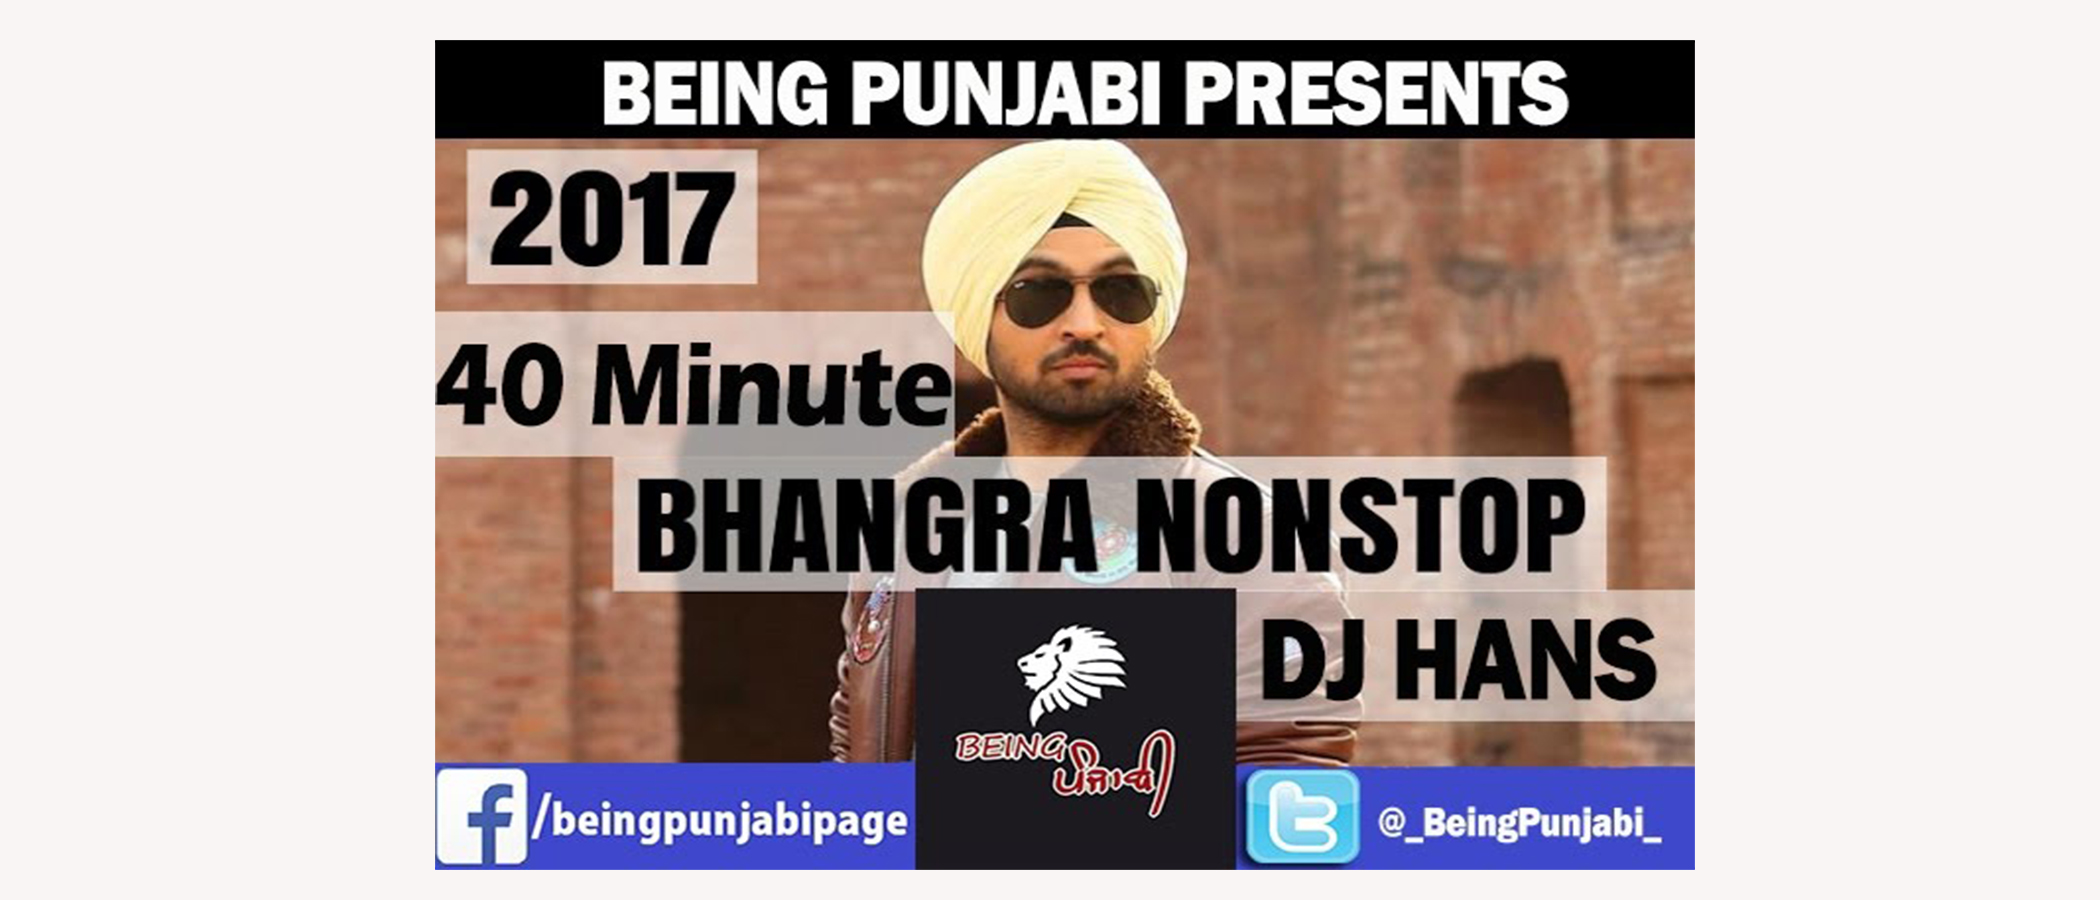 Punjabi new picture song download video 2019 hd djpunjab